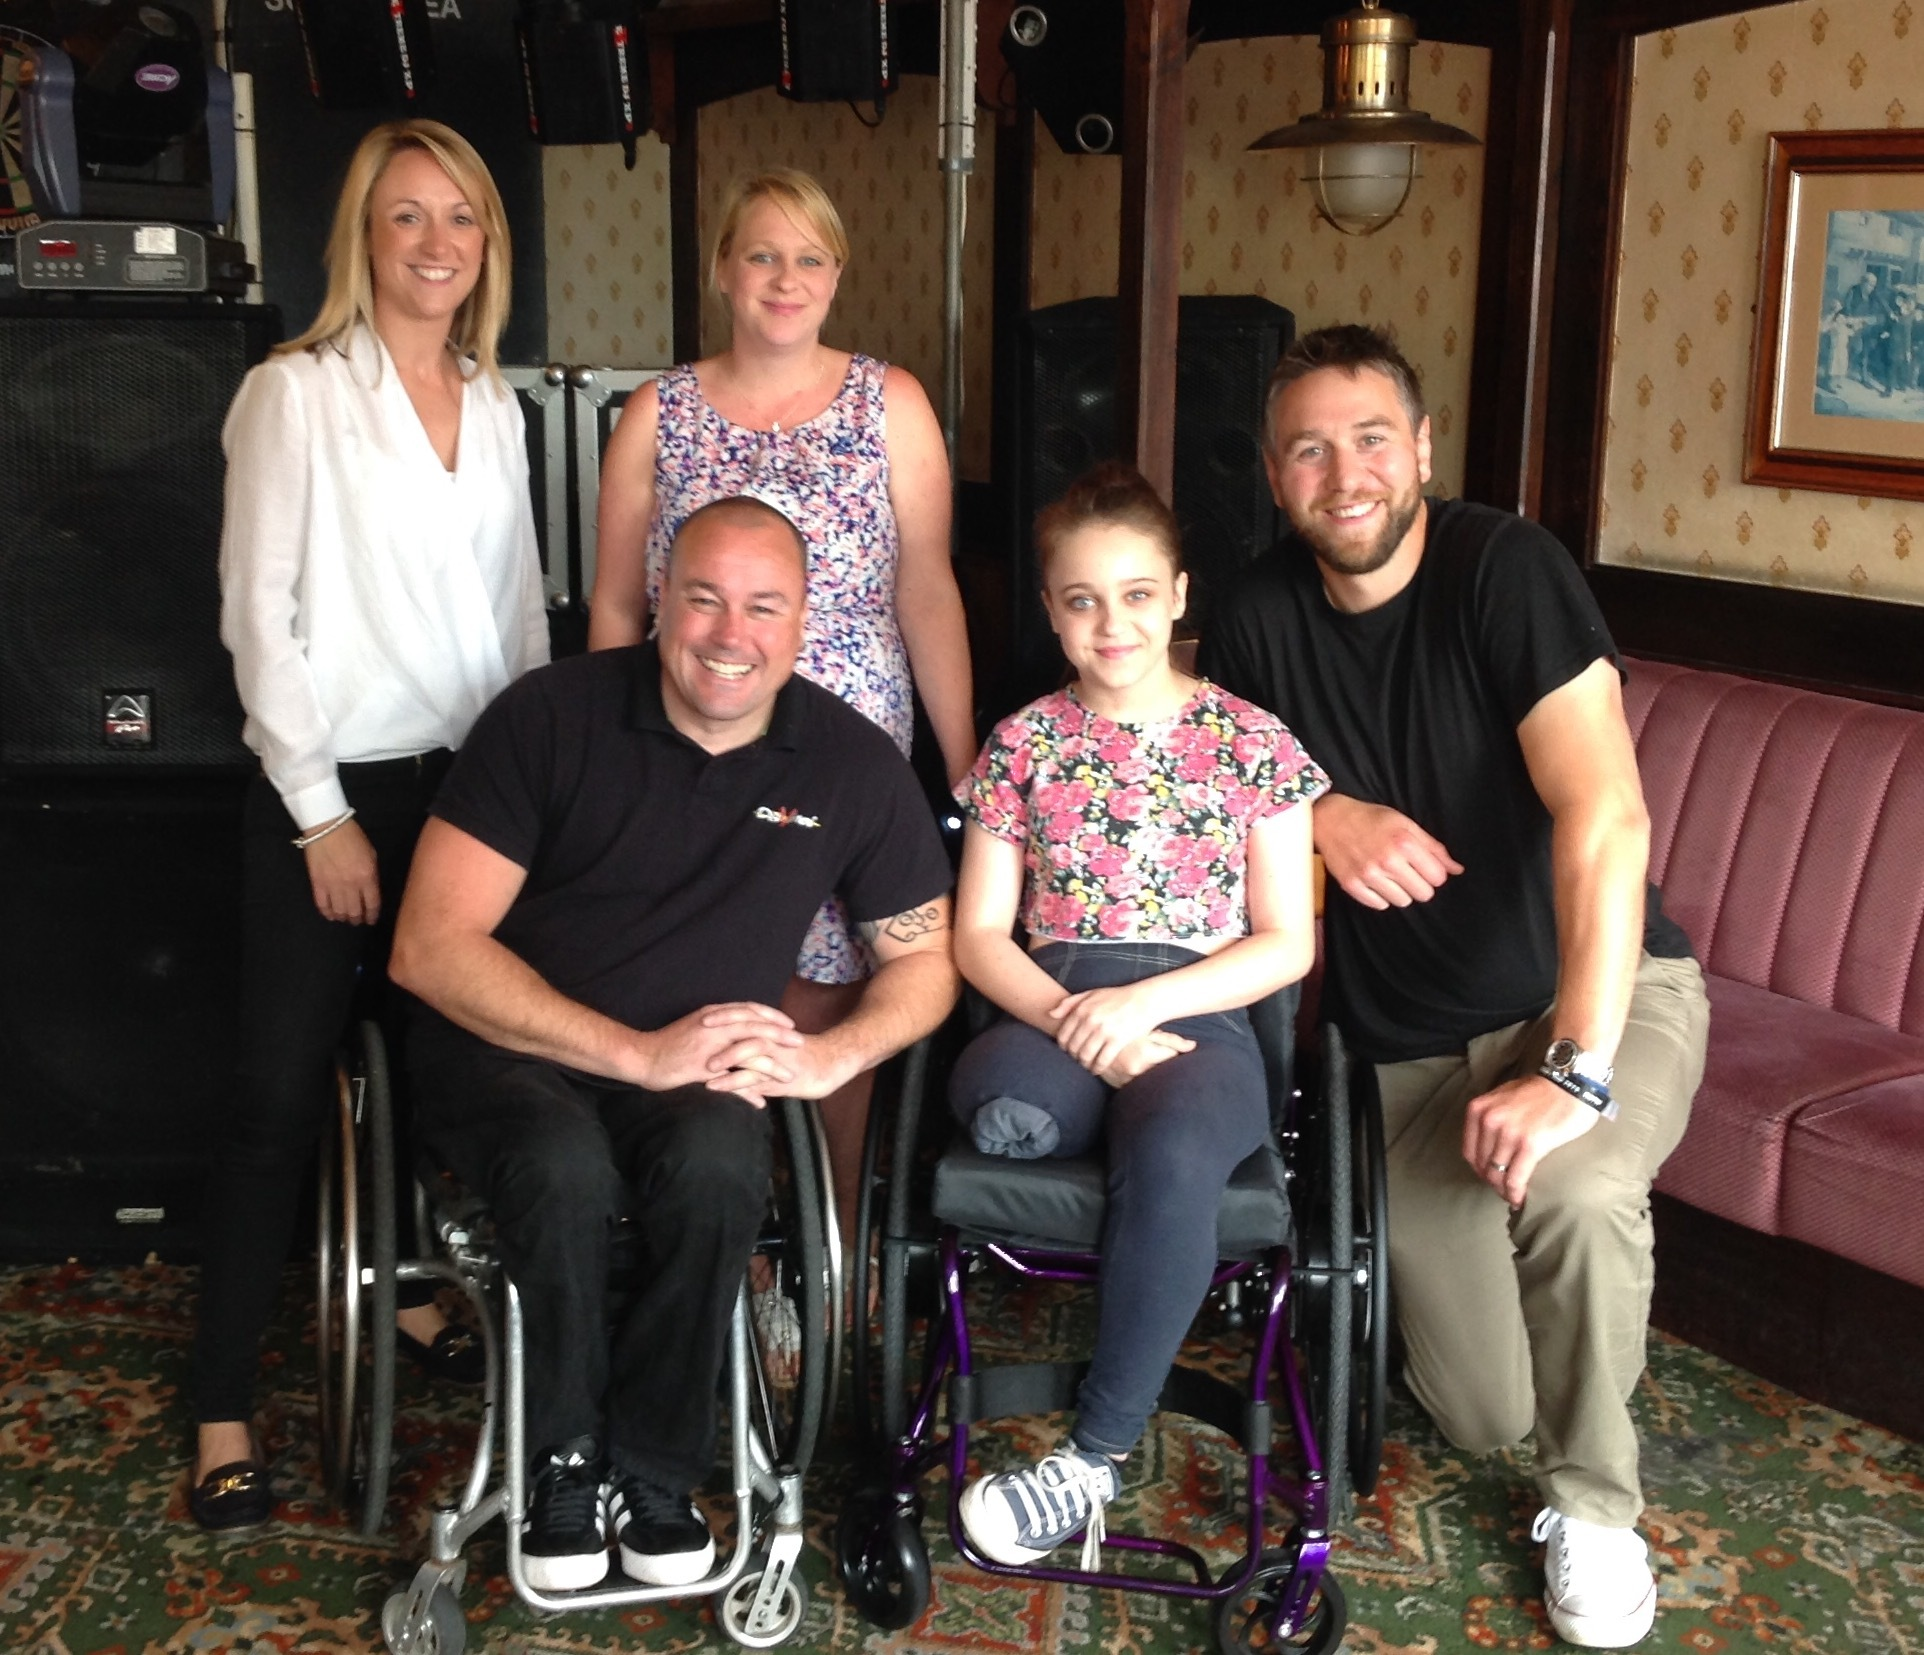 (Back, L to R) Princes Gate commercial director Samantha Atkinson, Lyndsey Leigh. (Front, L to R) Paralympian Richie Powell, Tia Leigh and Ryan Jones